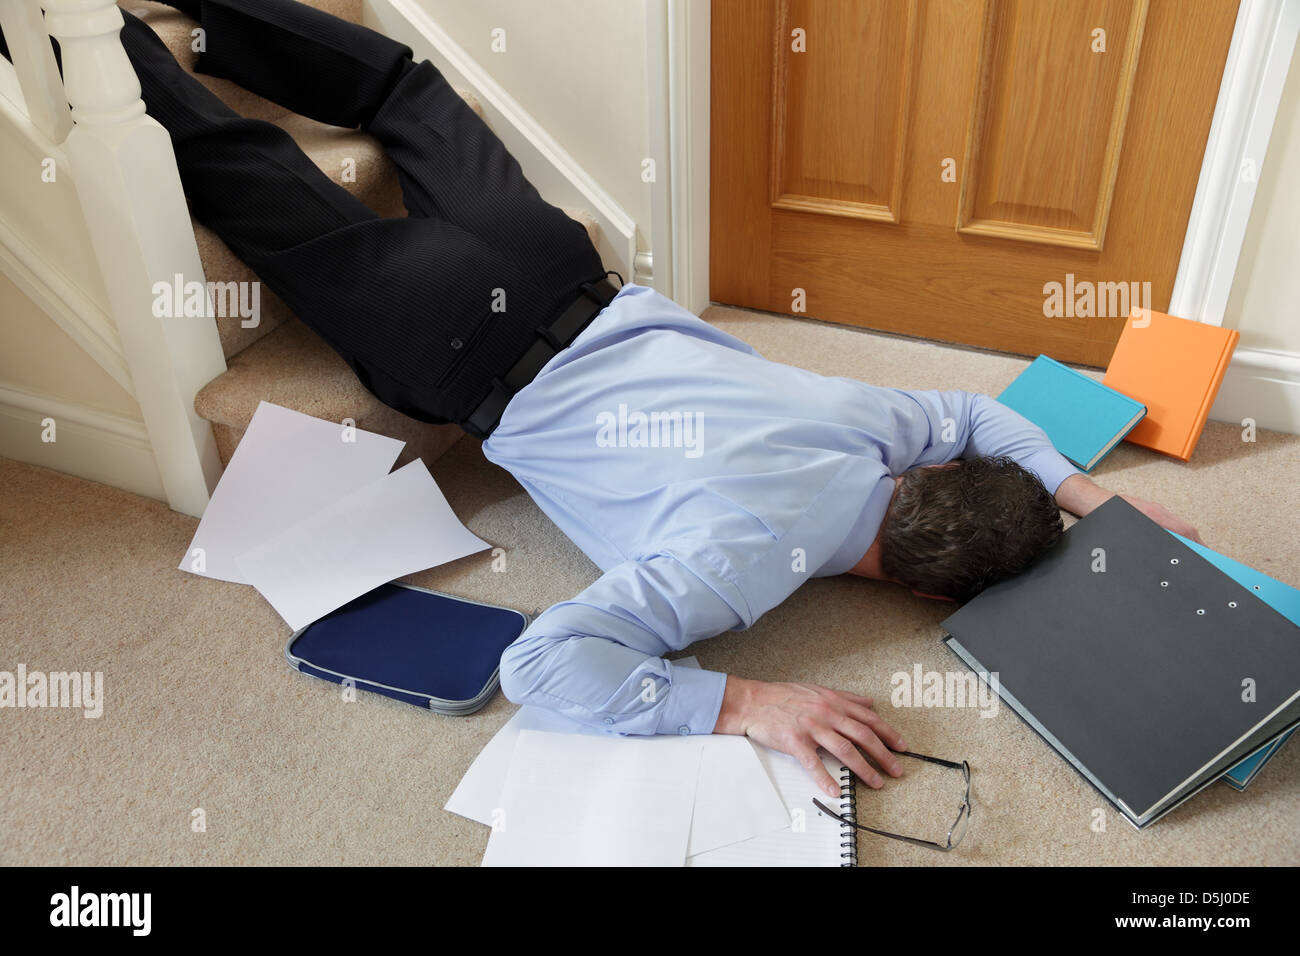 Falling down the stairs - Stock Image